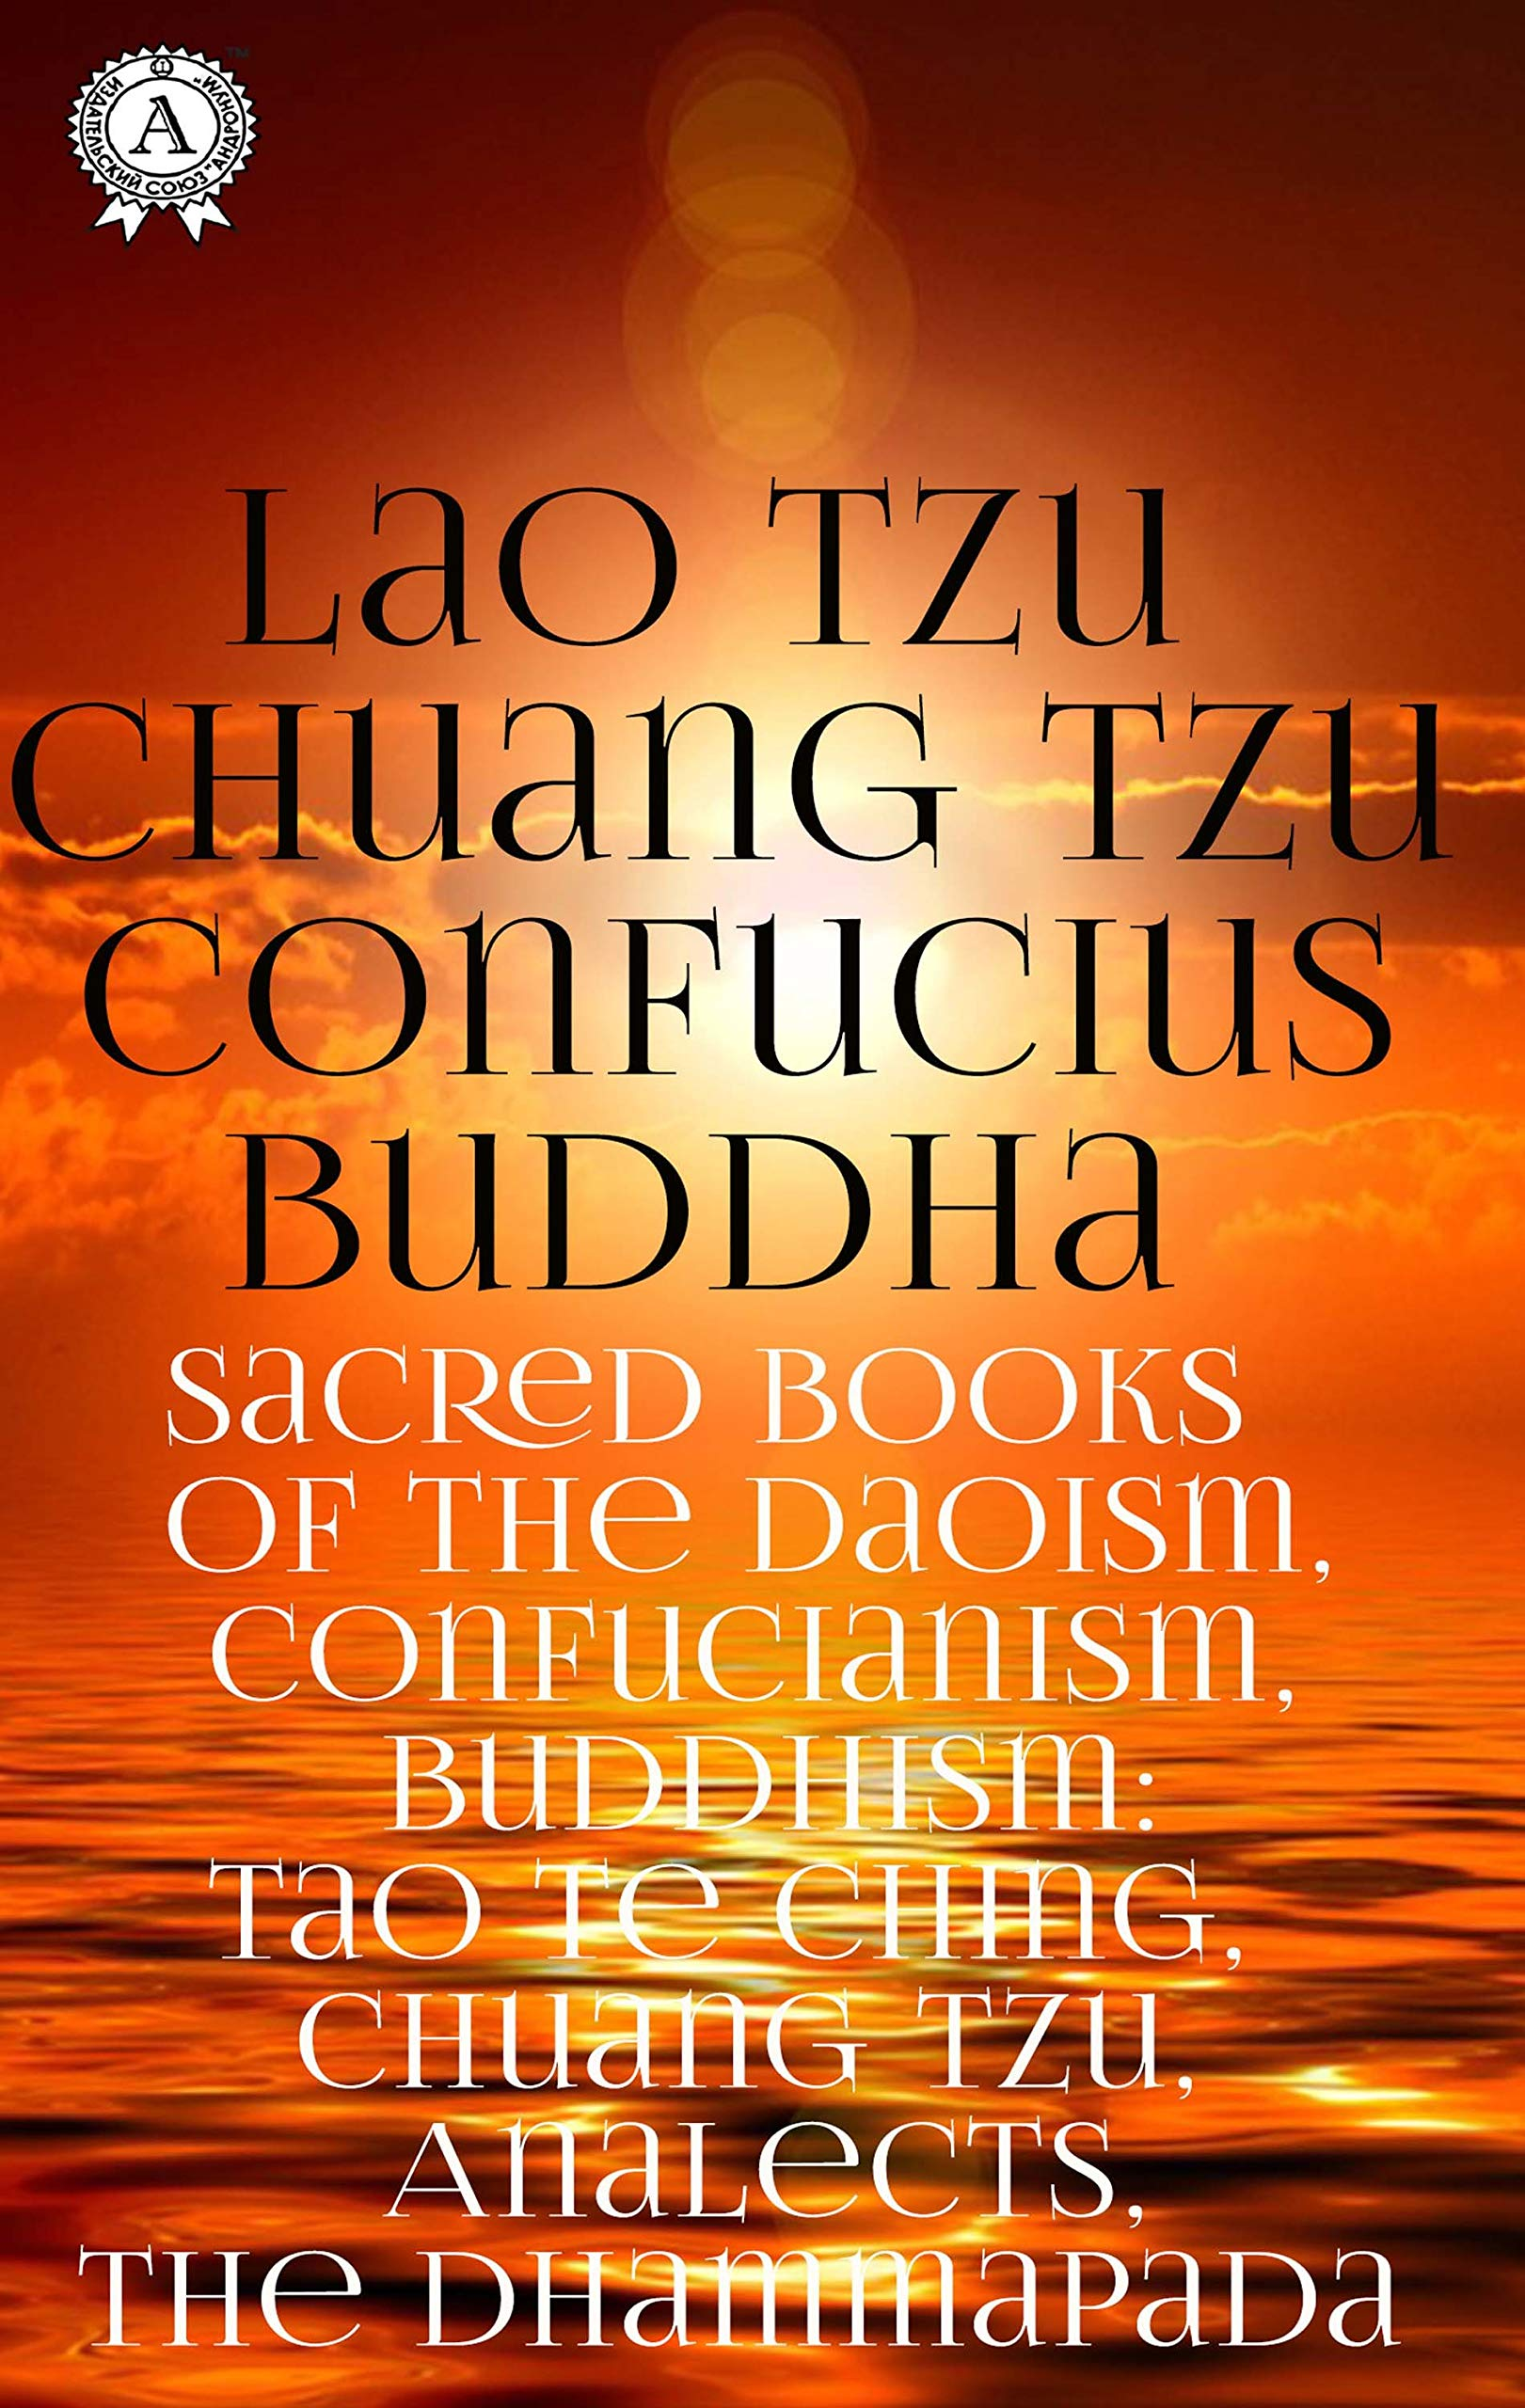 Sacred Books of the Daoism, Confucianism, Buddhism: Tao Te Ching, Chuang Tzu, Analects, The Dhammapada